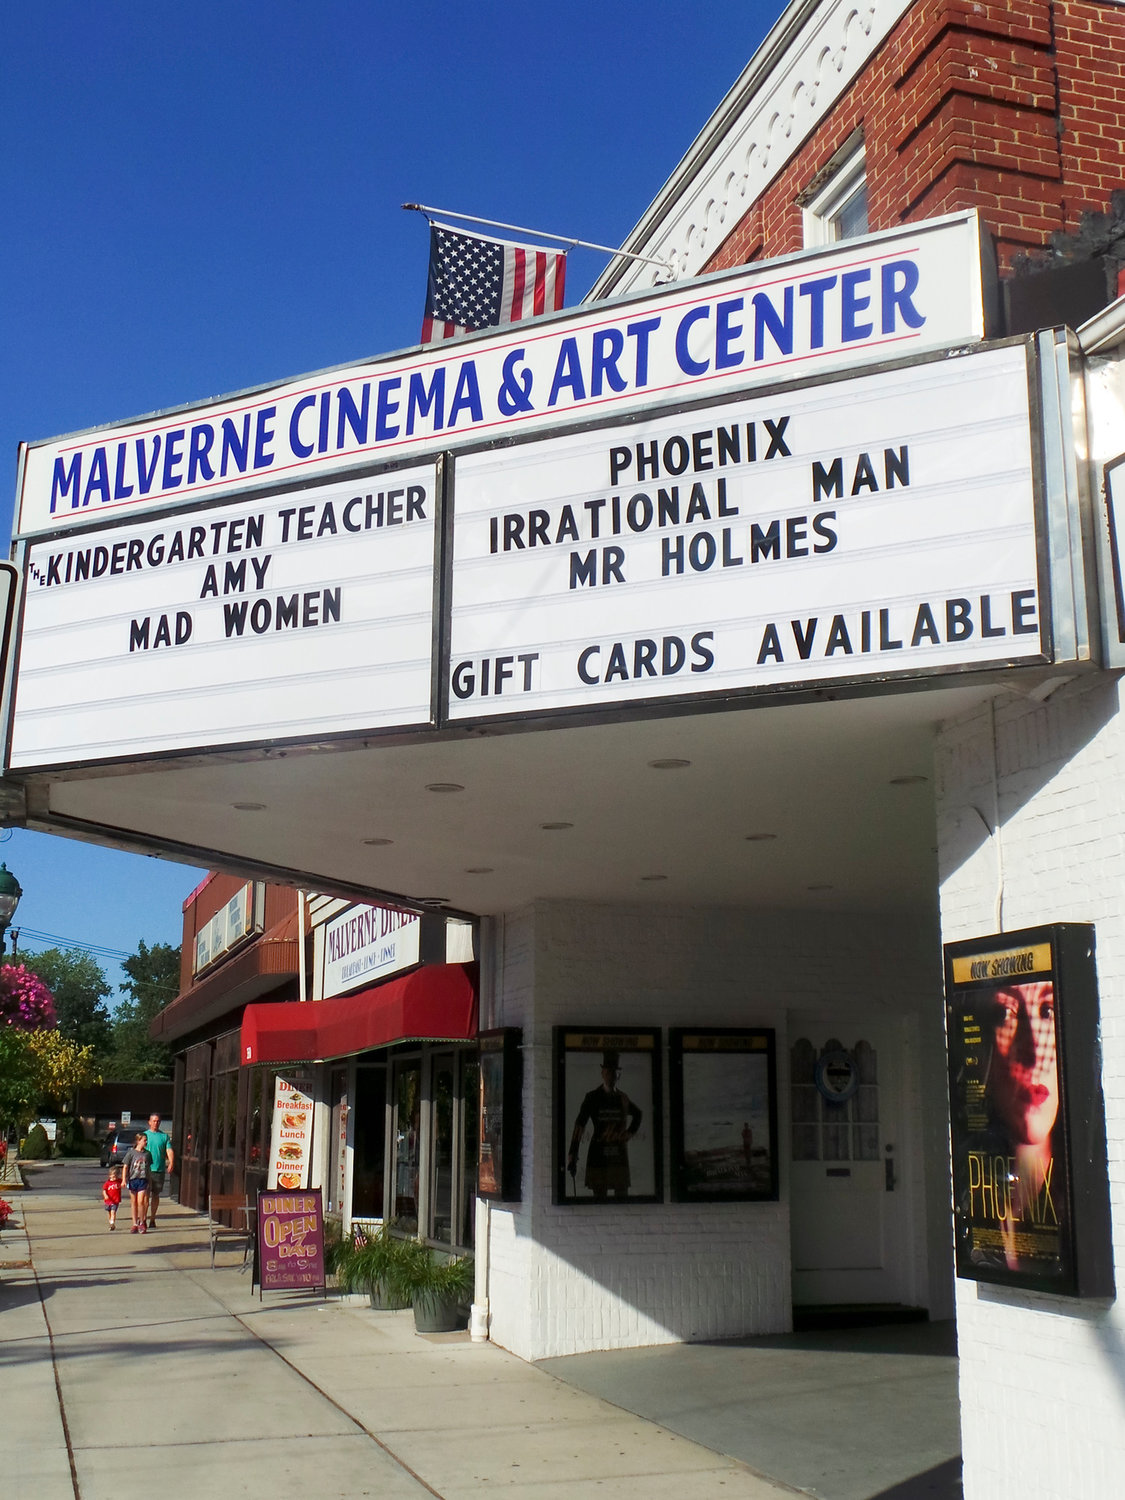 The Malverne Cinema is one of several public venues that was closed by Gov. Andrew Cuomo in response to the coronavirus.